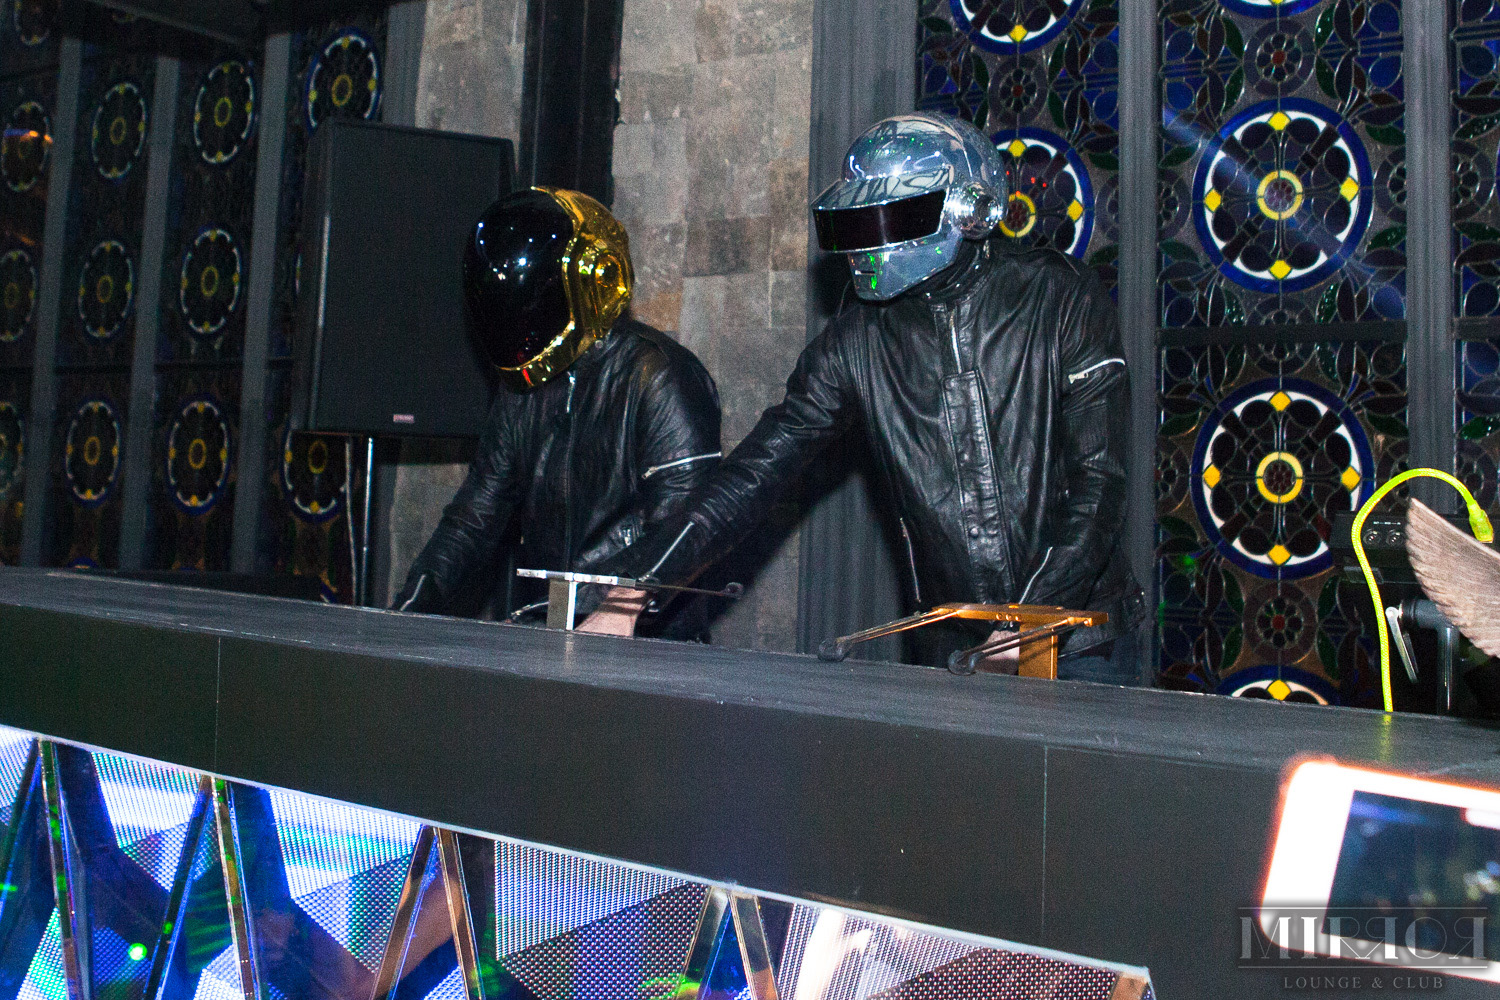 030_Daft Punk Tribute @Mirror 2014-12-04